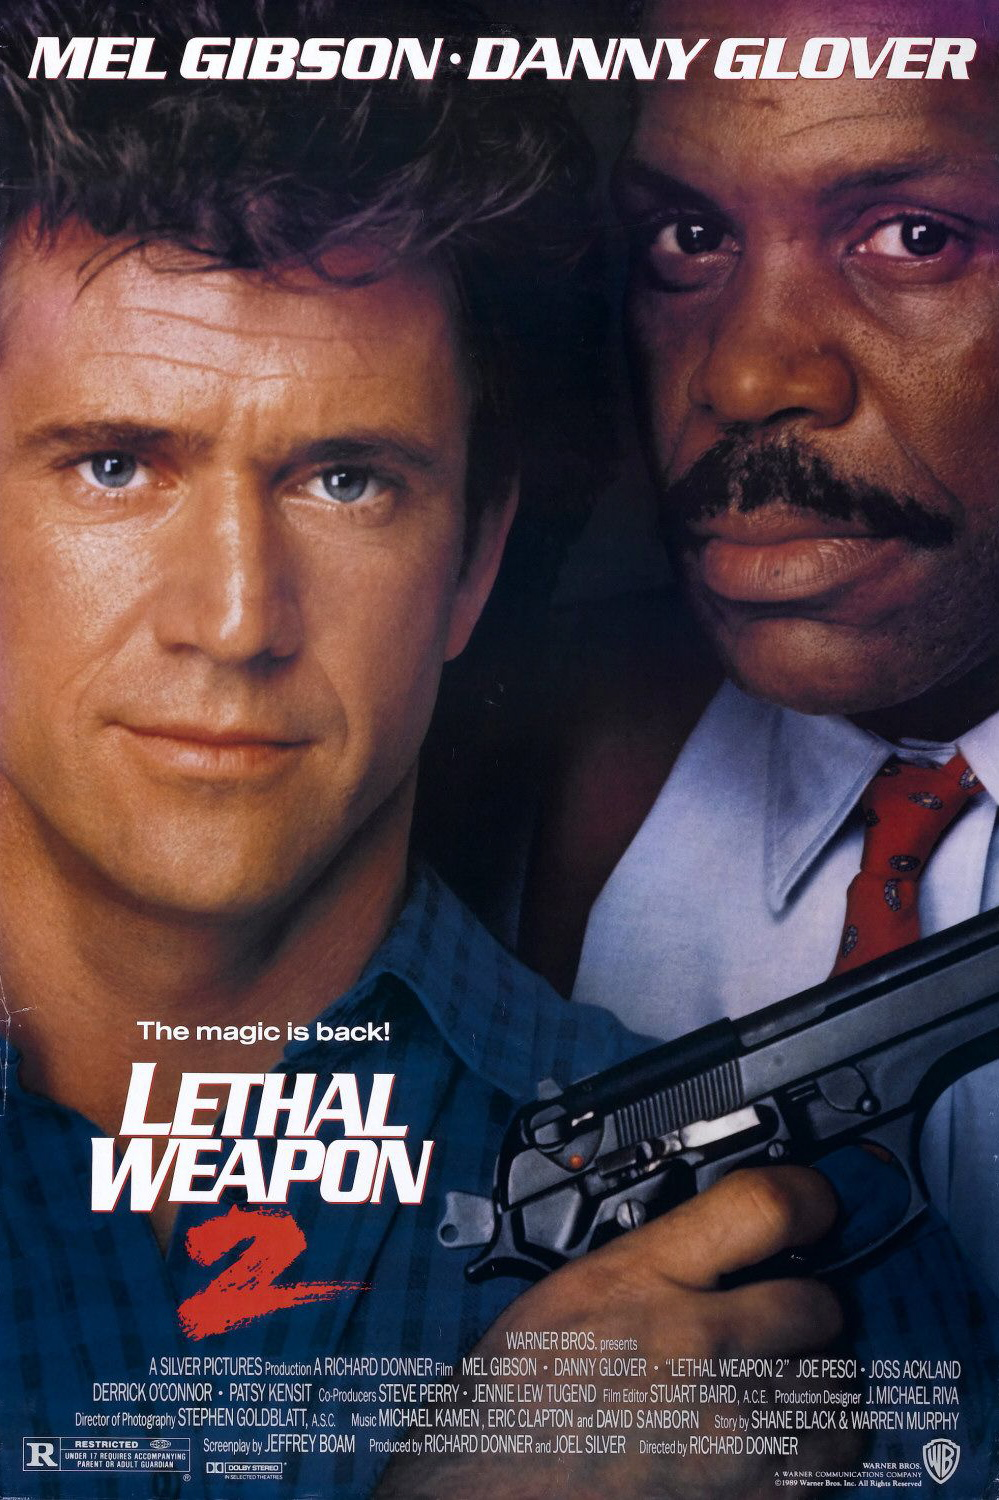 Lethal Weapon 2 (1989) | Movie Poster